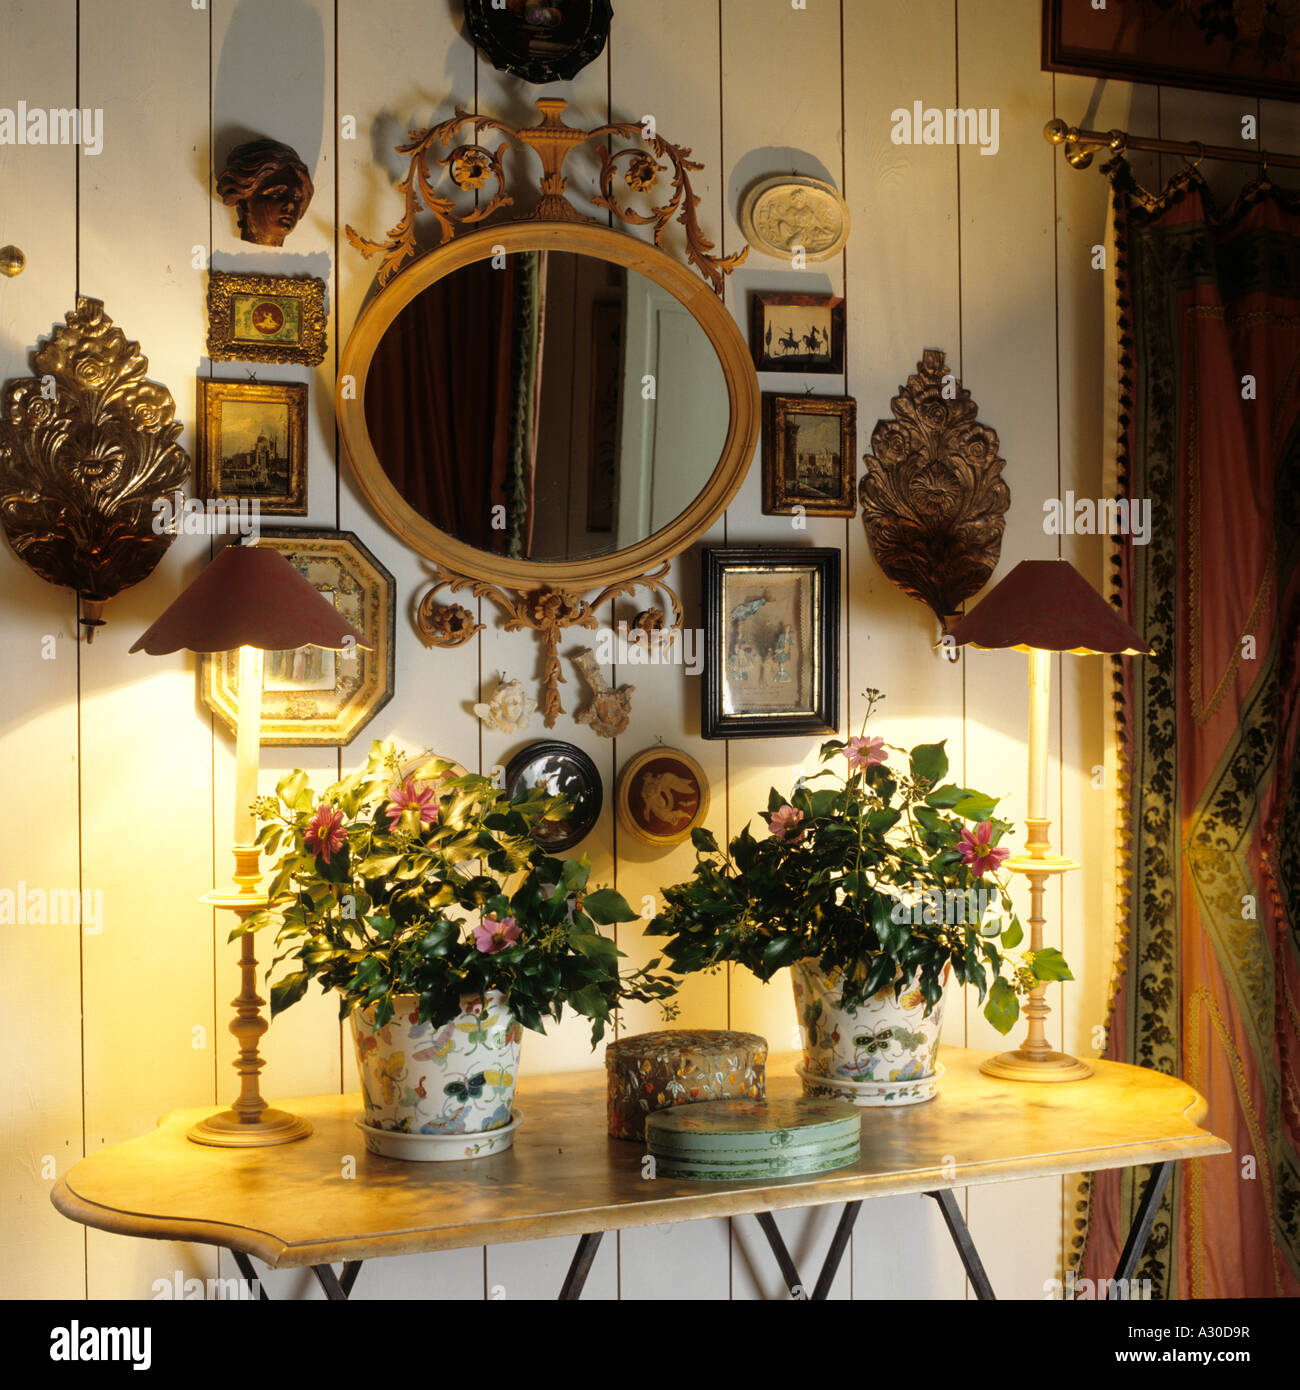 Mirror and artwork above console table with flower arrangement and